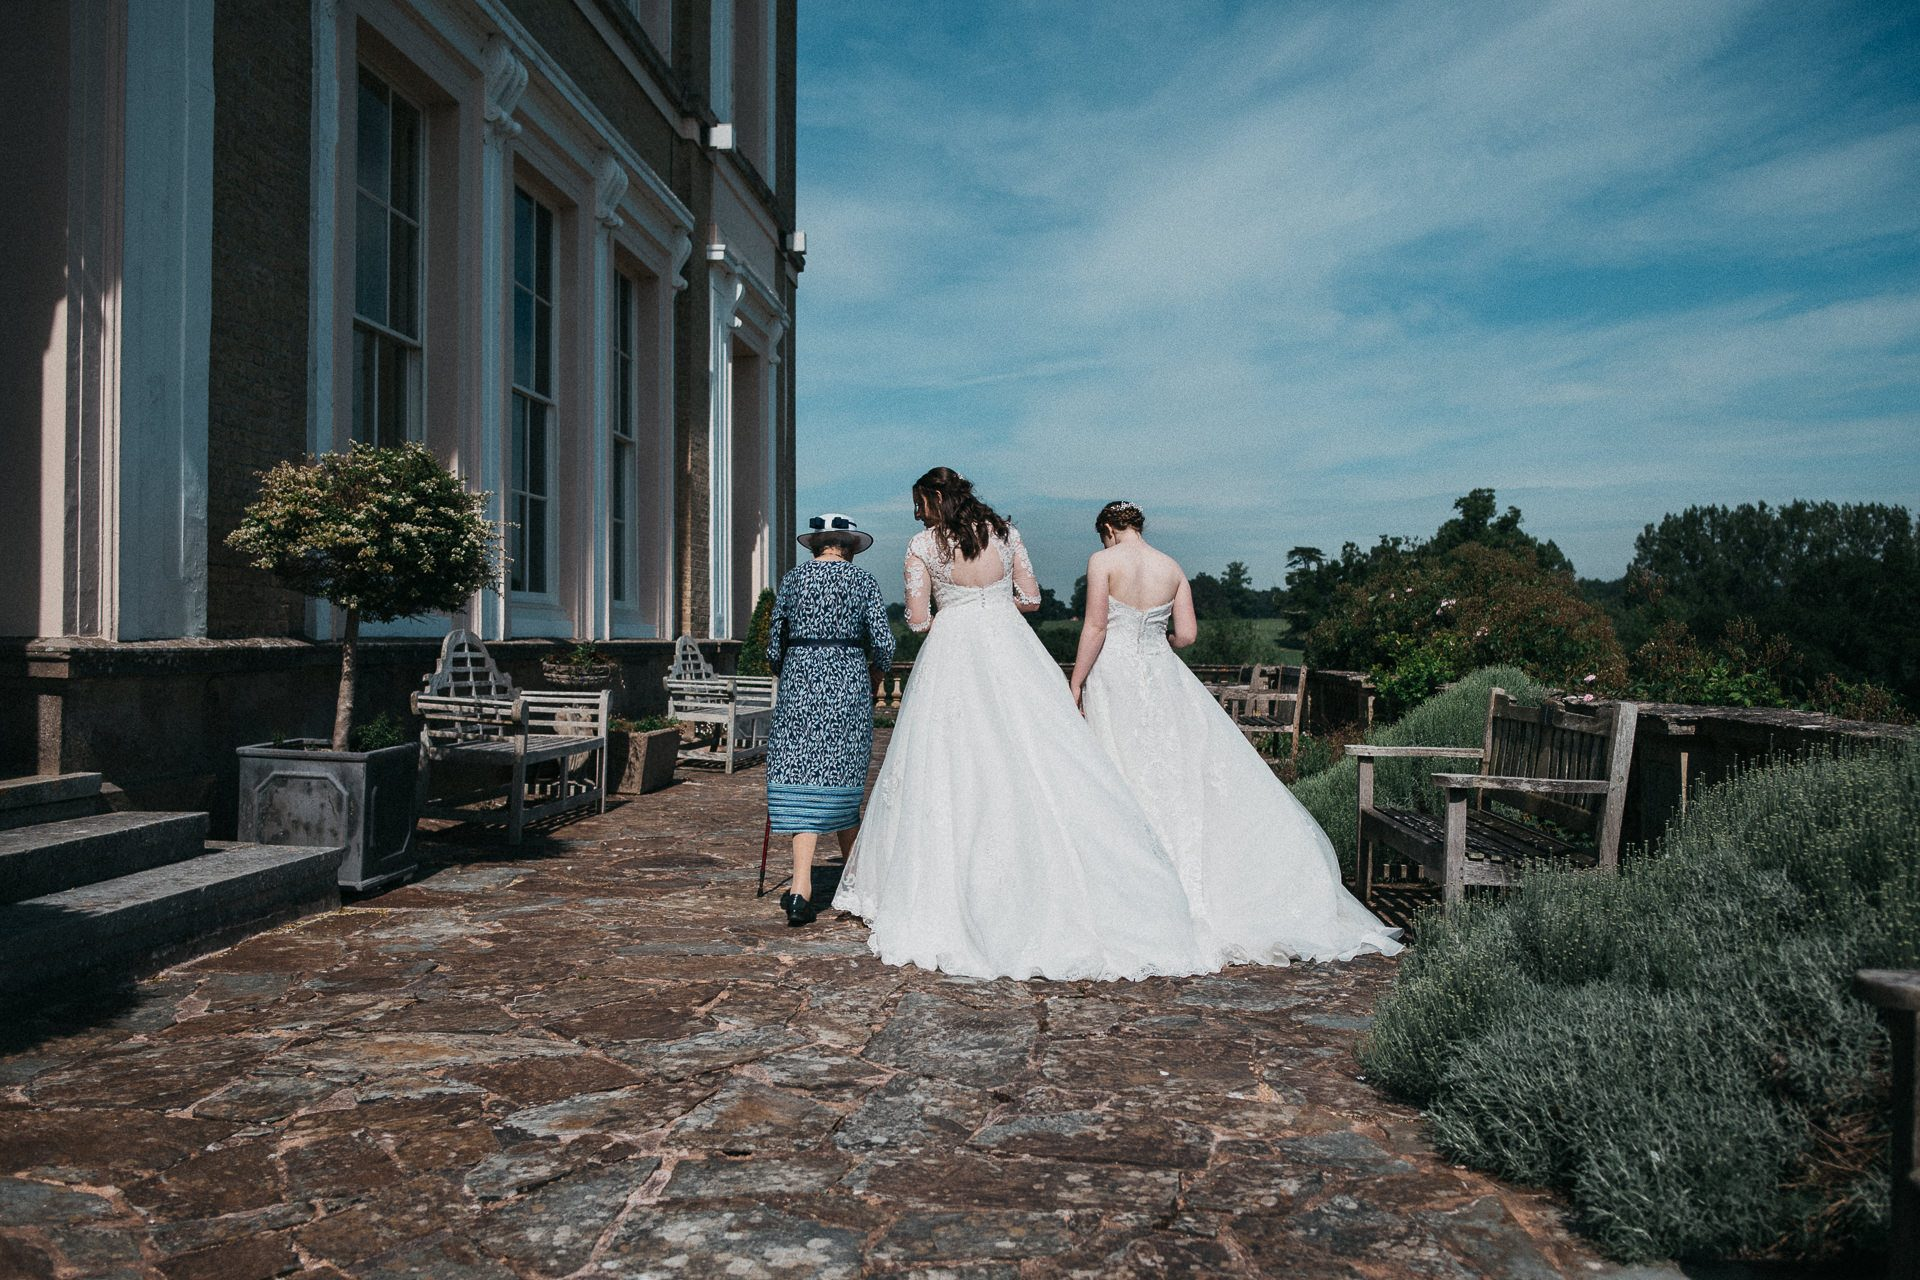 0057-DEVON-SOMERSET-WEDDING-PHOTOGRAPHER-0274-BEST-OF-2019-LOUISE-MAY-DEVON-SOMERSET-WEDDING-PHOTOGRAPHY-LM2_7426